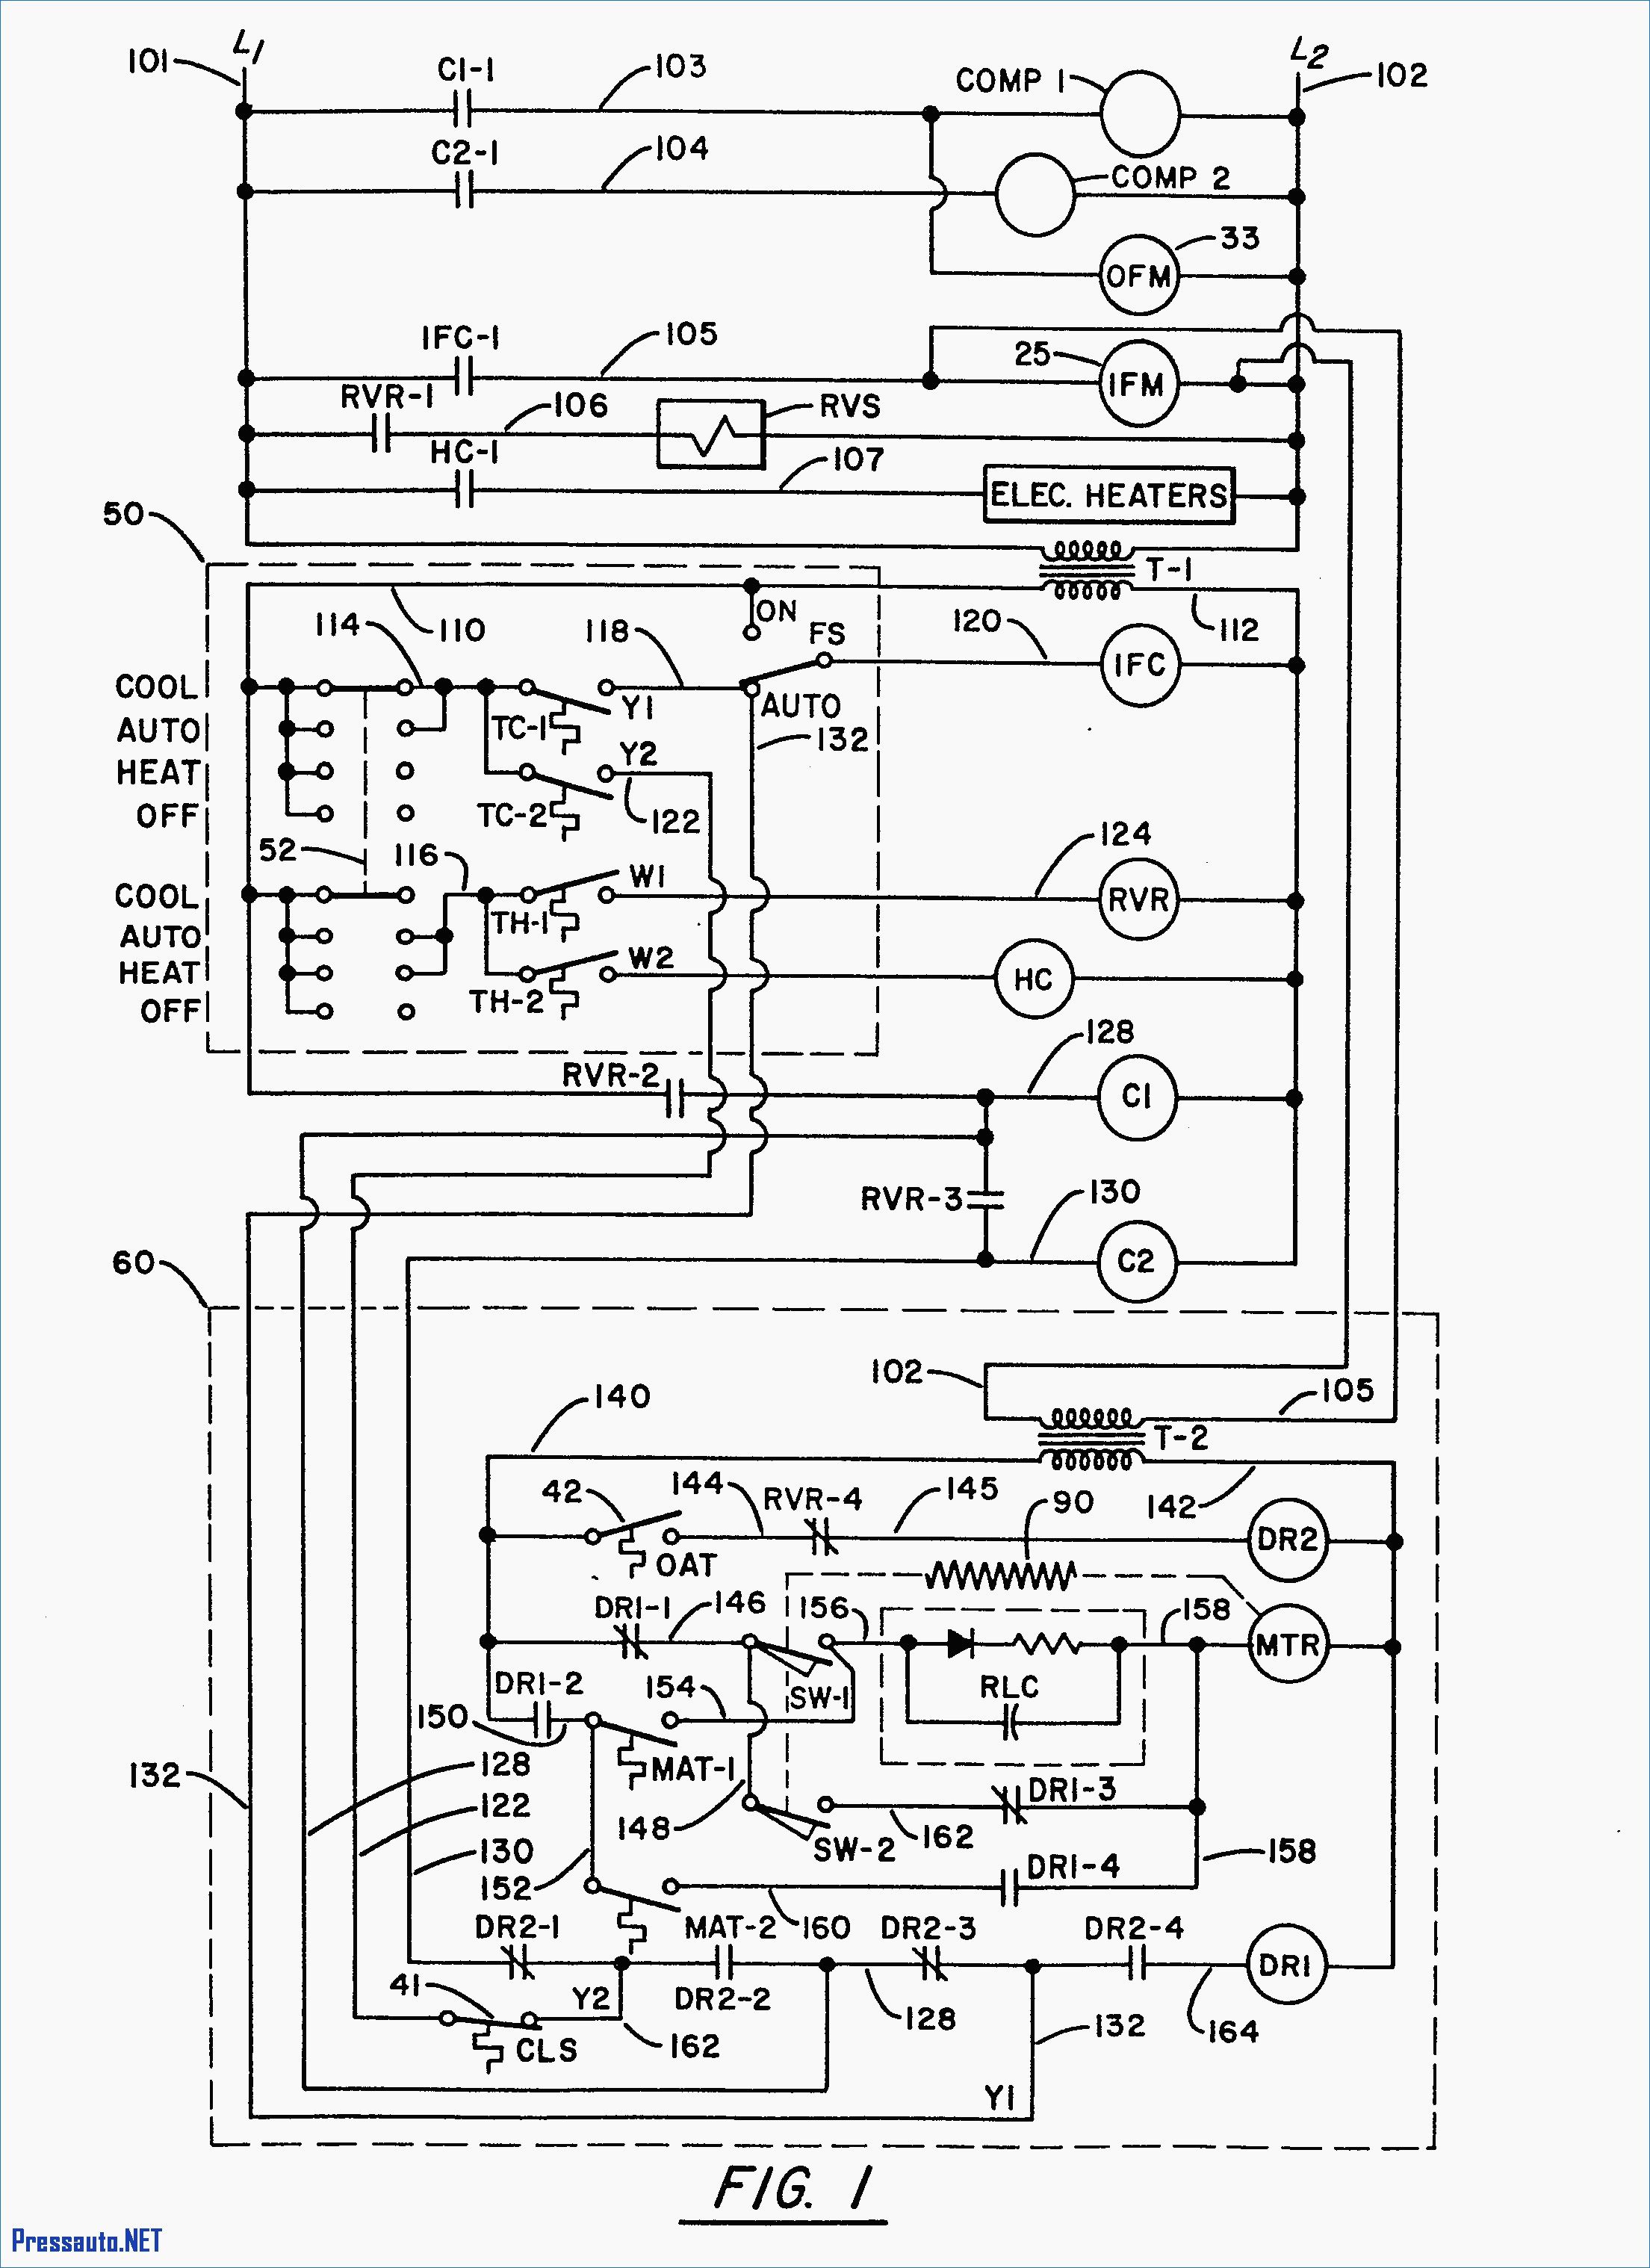 trane rooftop unit wiring diagram Collection-Trane Ac Wiring Diagram Best Fresh York Rooftop Unit Wiring Diagram Wiring 9-a